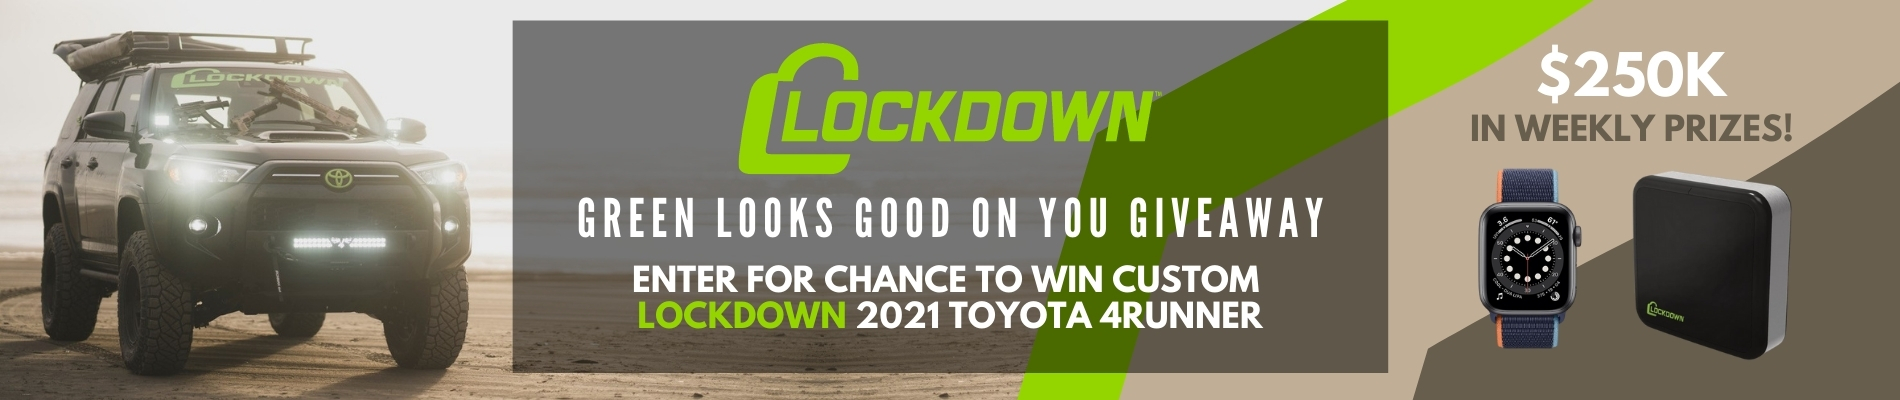 Lockdown Giveaway Banner Mar 2021 1900x400